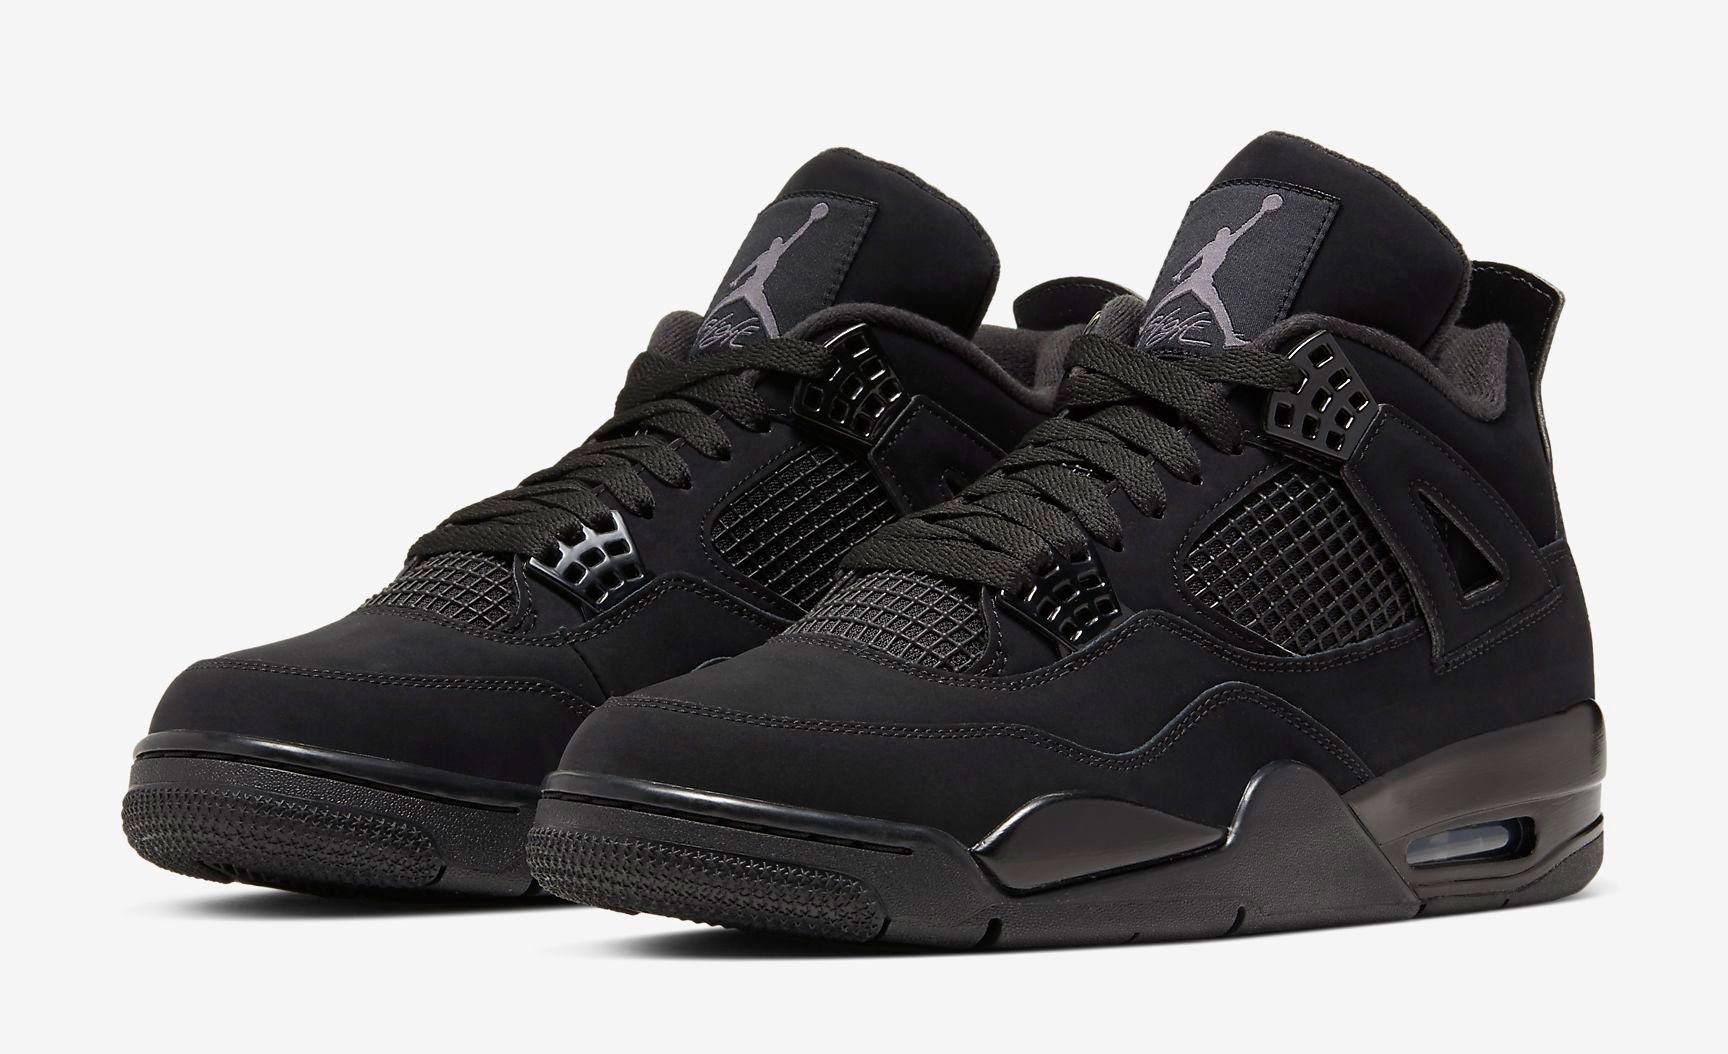 where-to-buy-air-jordan-4-black-cat-2020